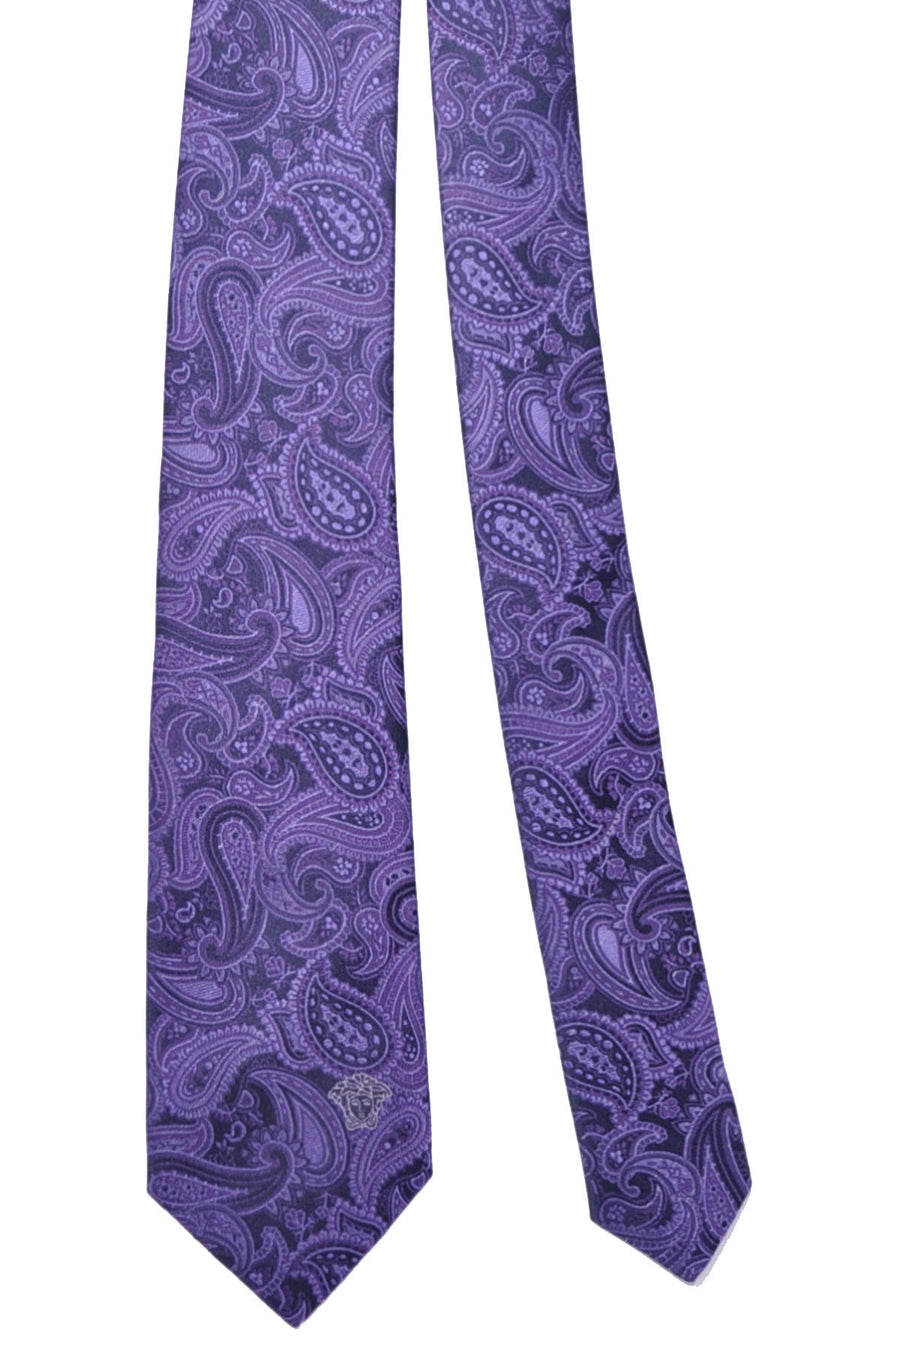 Versace Tie Purple Paisley - Made in Italy